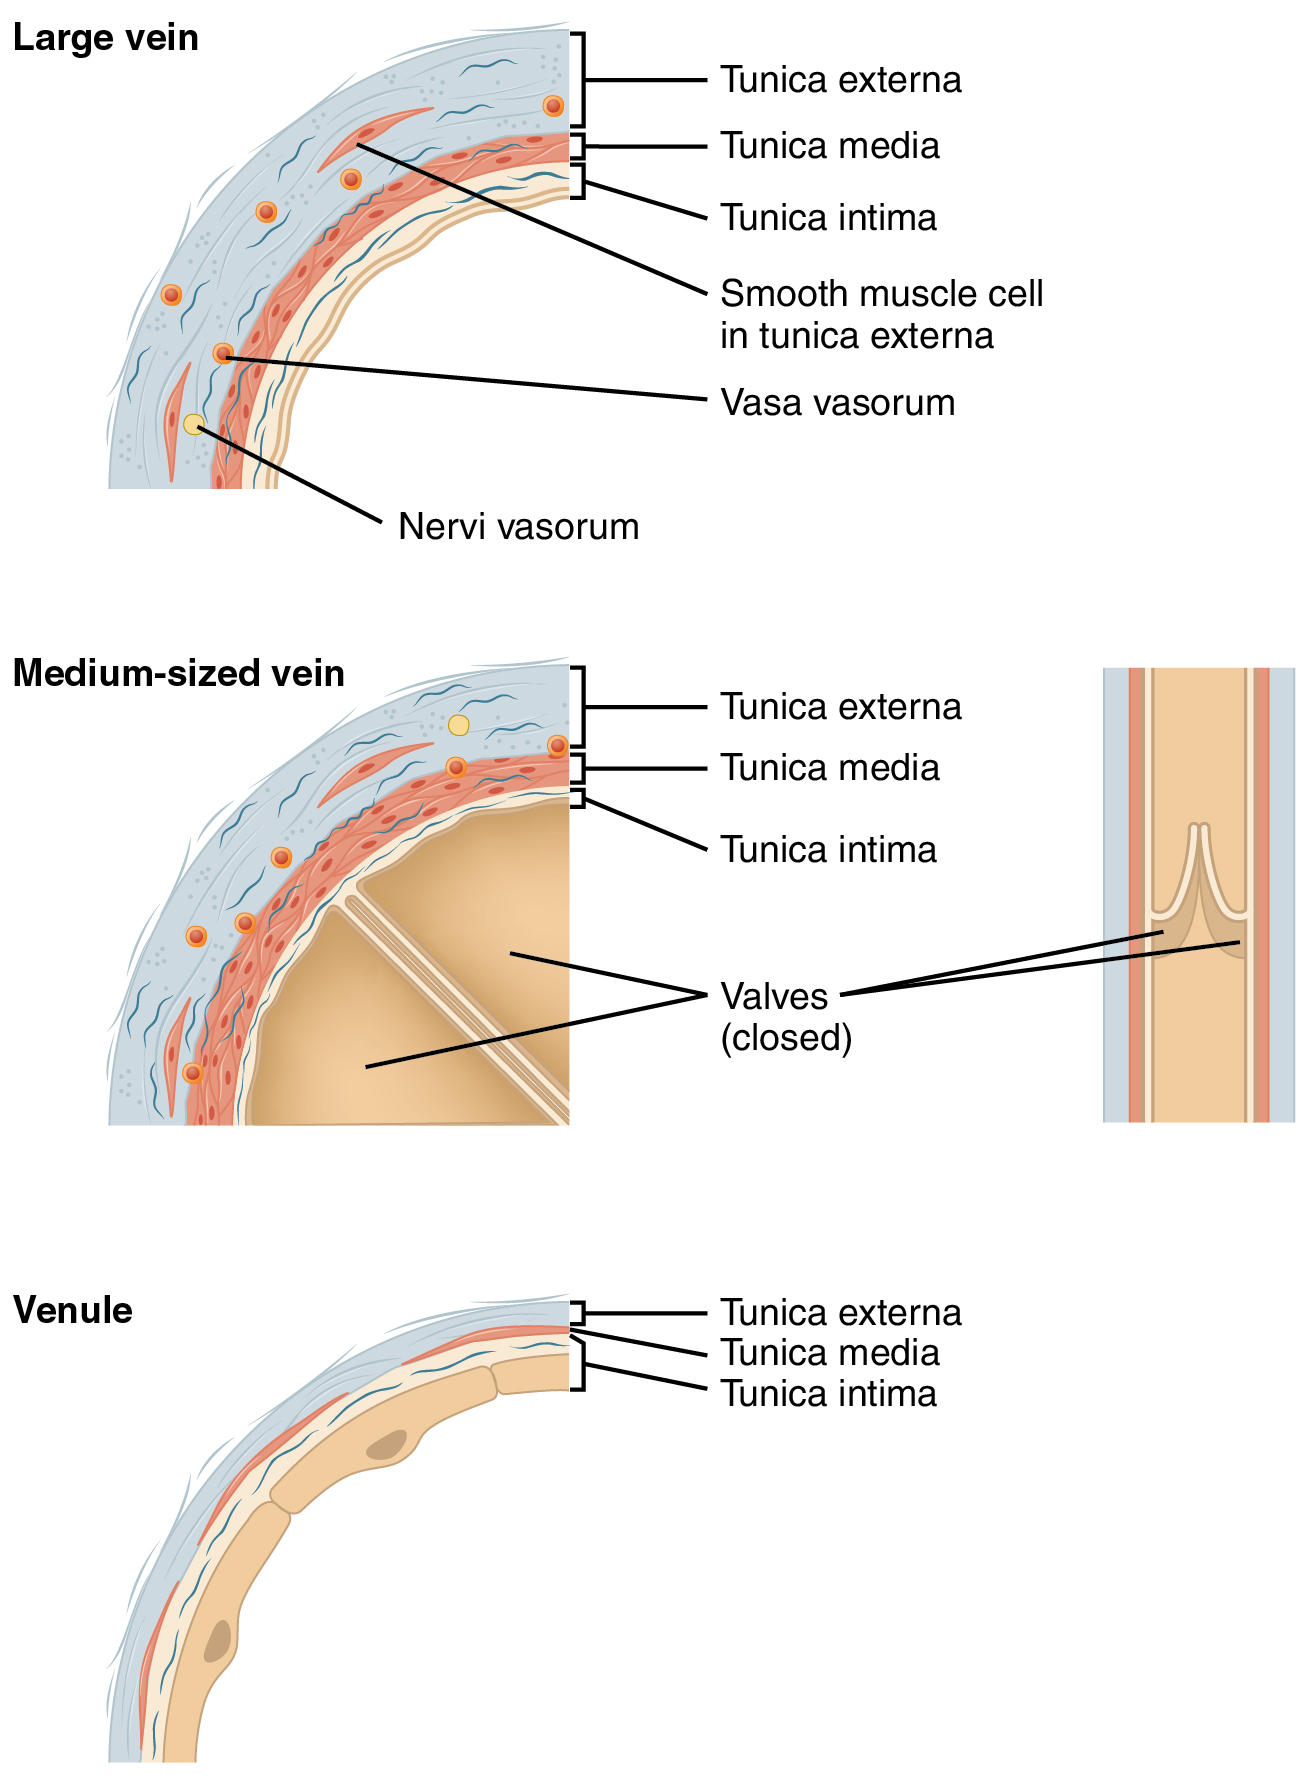 Structure and function of blood vessels anatomy and physiology many veins have valves to prevent back flow of blood whereas venules do not in terms of scale the diameter of a venule is measured in micrometers geenschuldenfo Images